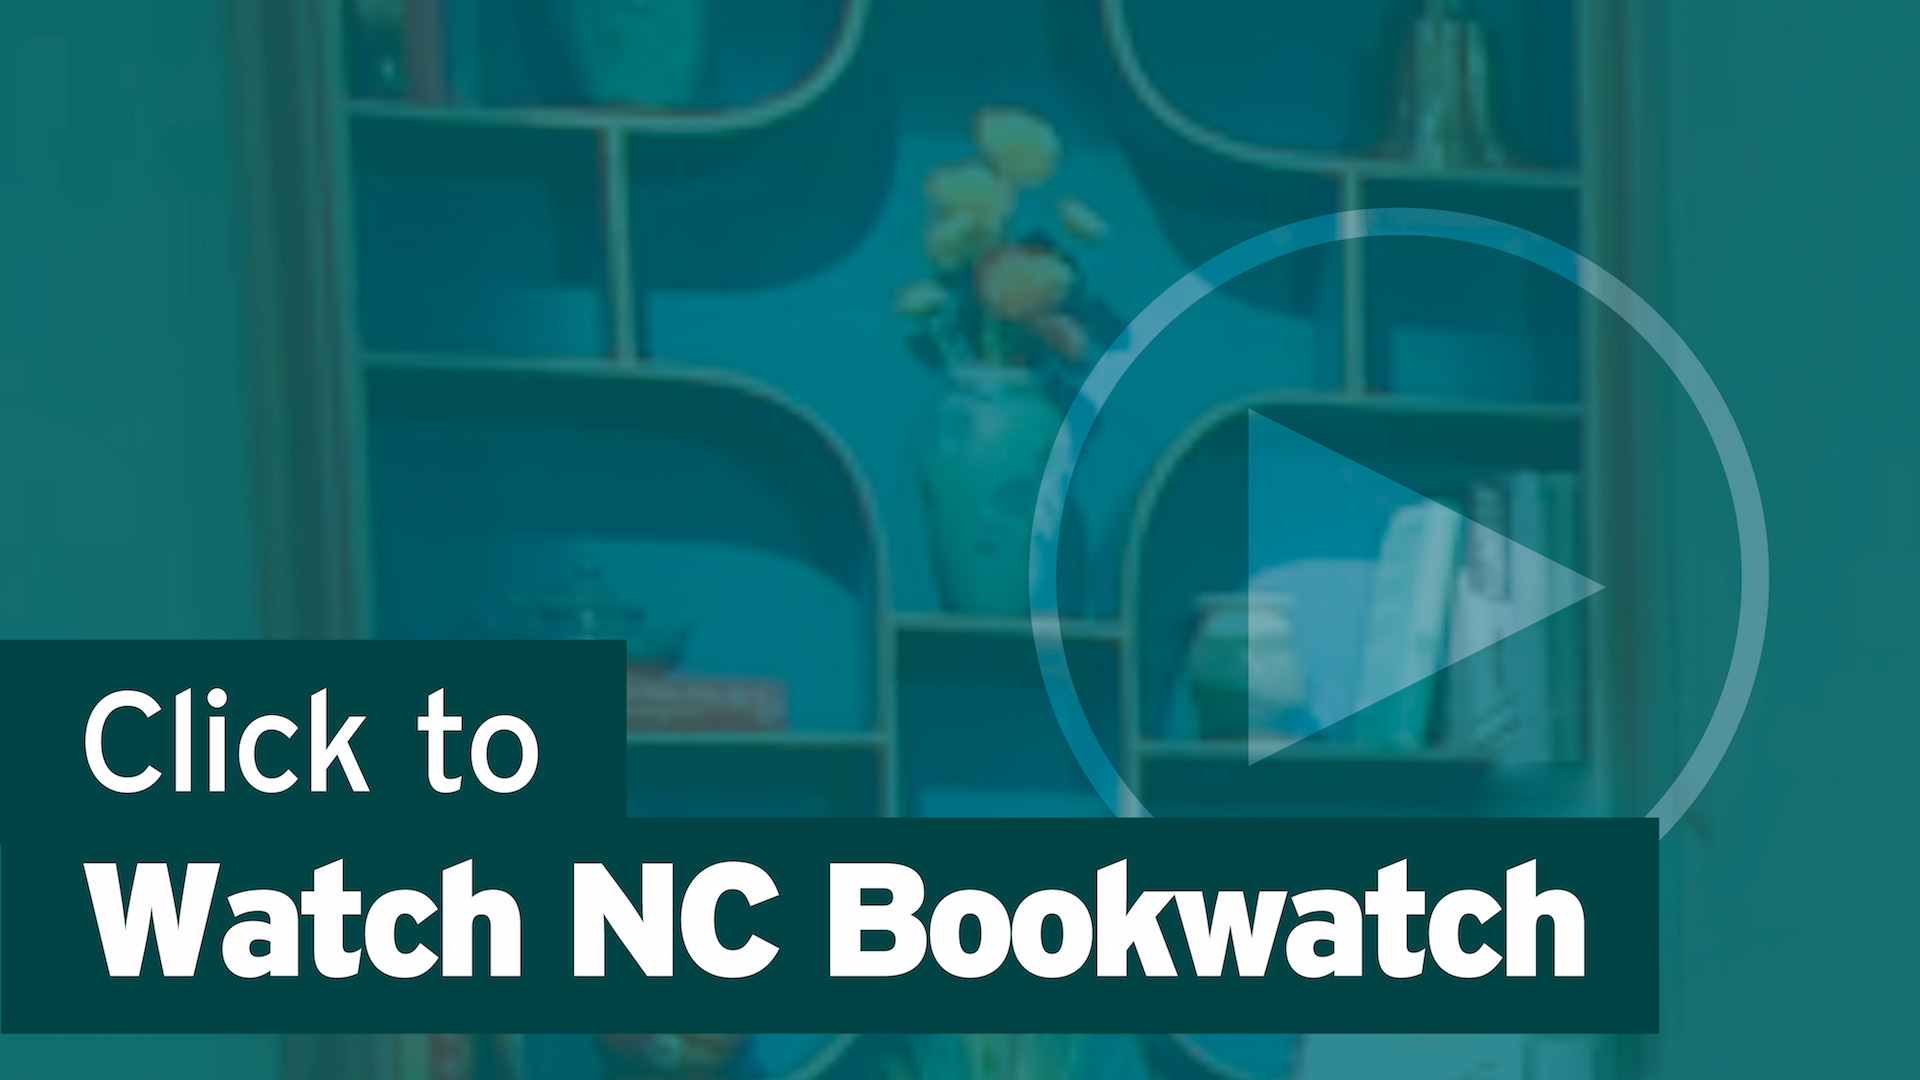 Click to Watch NC Bookwatch